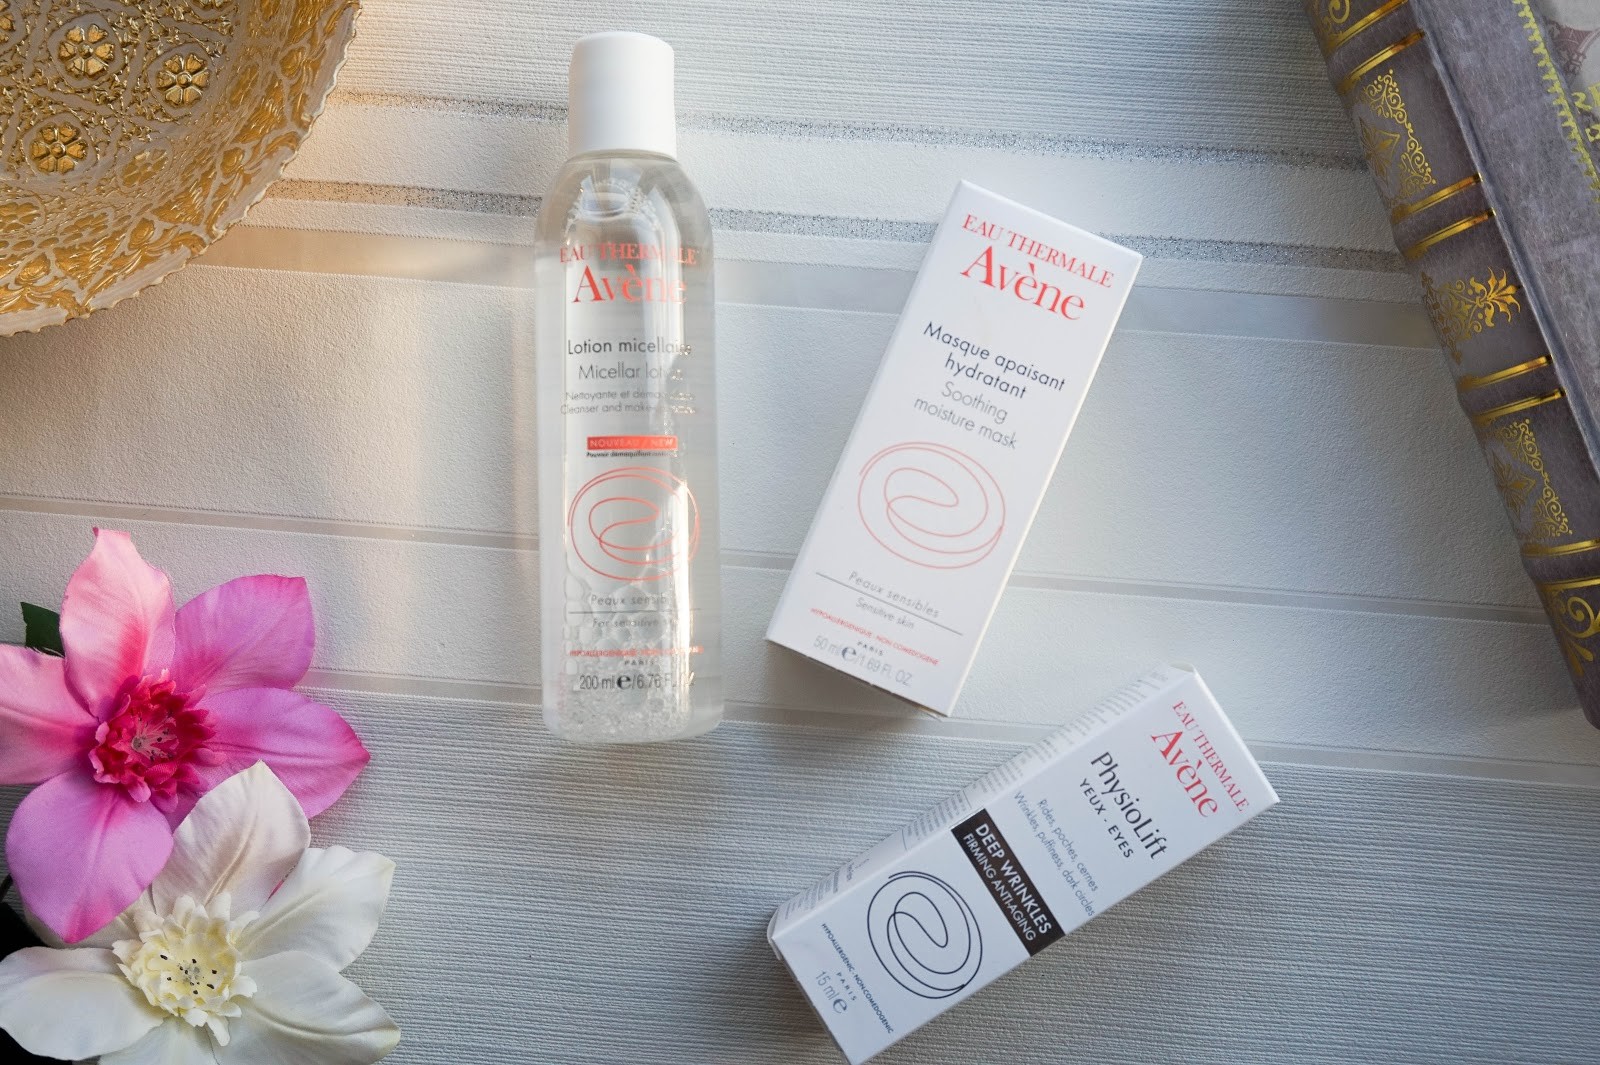 Focus on Avene Skincare